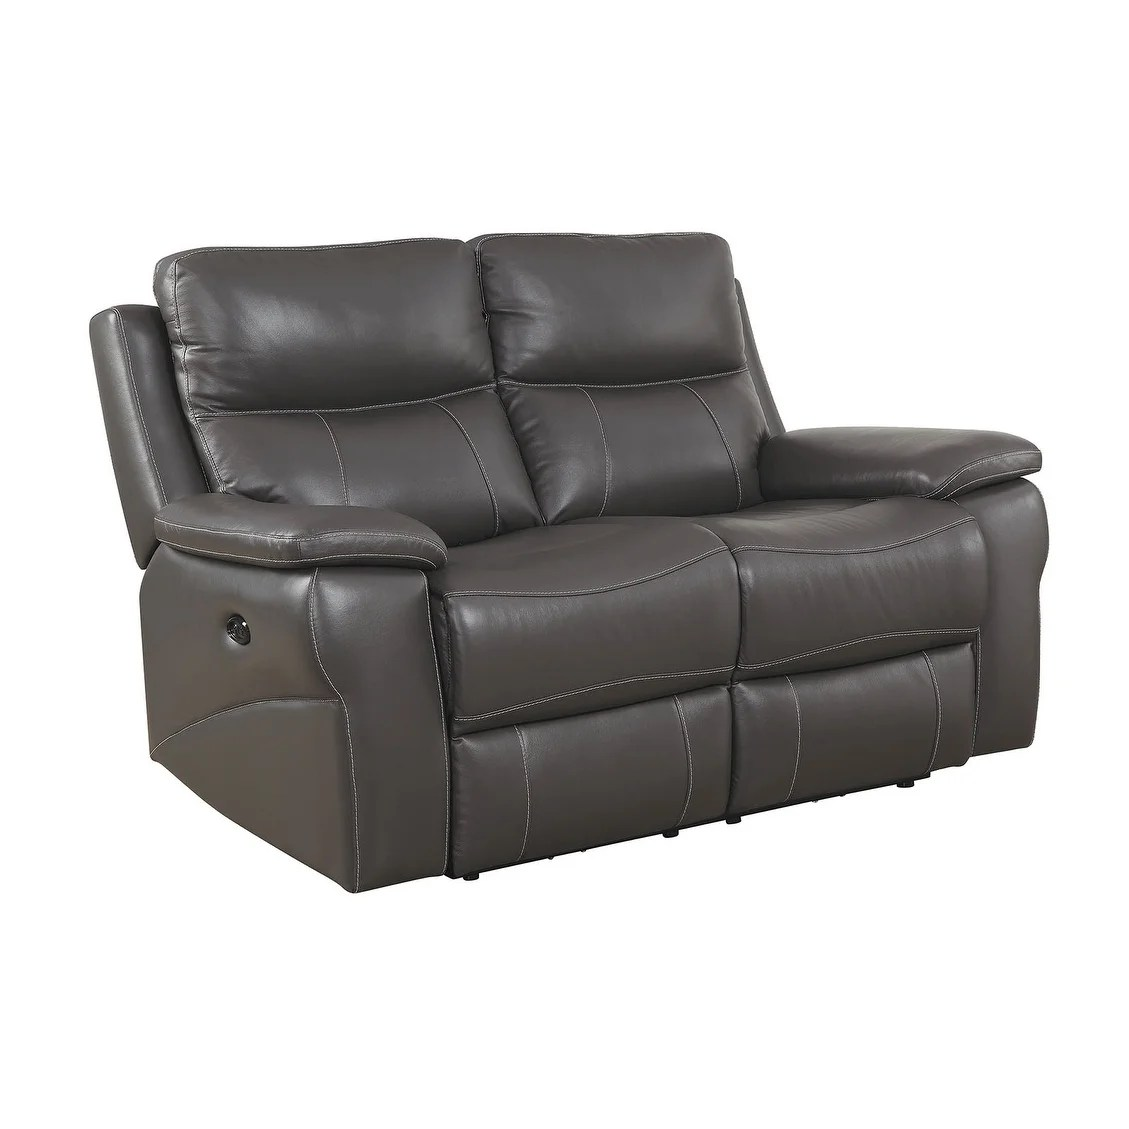 Double Recliner Chair Contemporary Style Double Recliner Leather Love Seat Gray